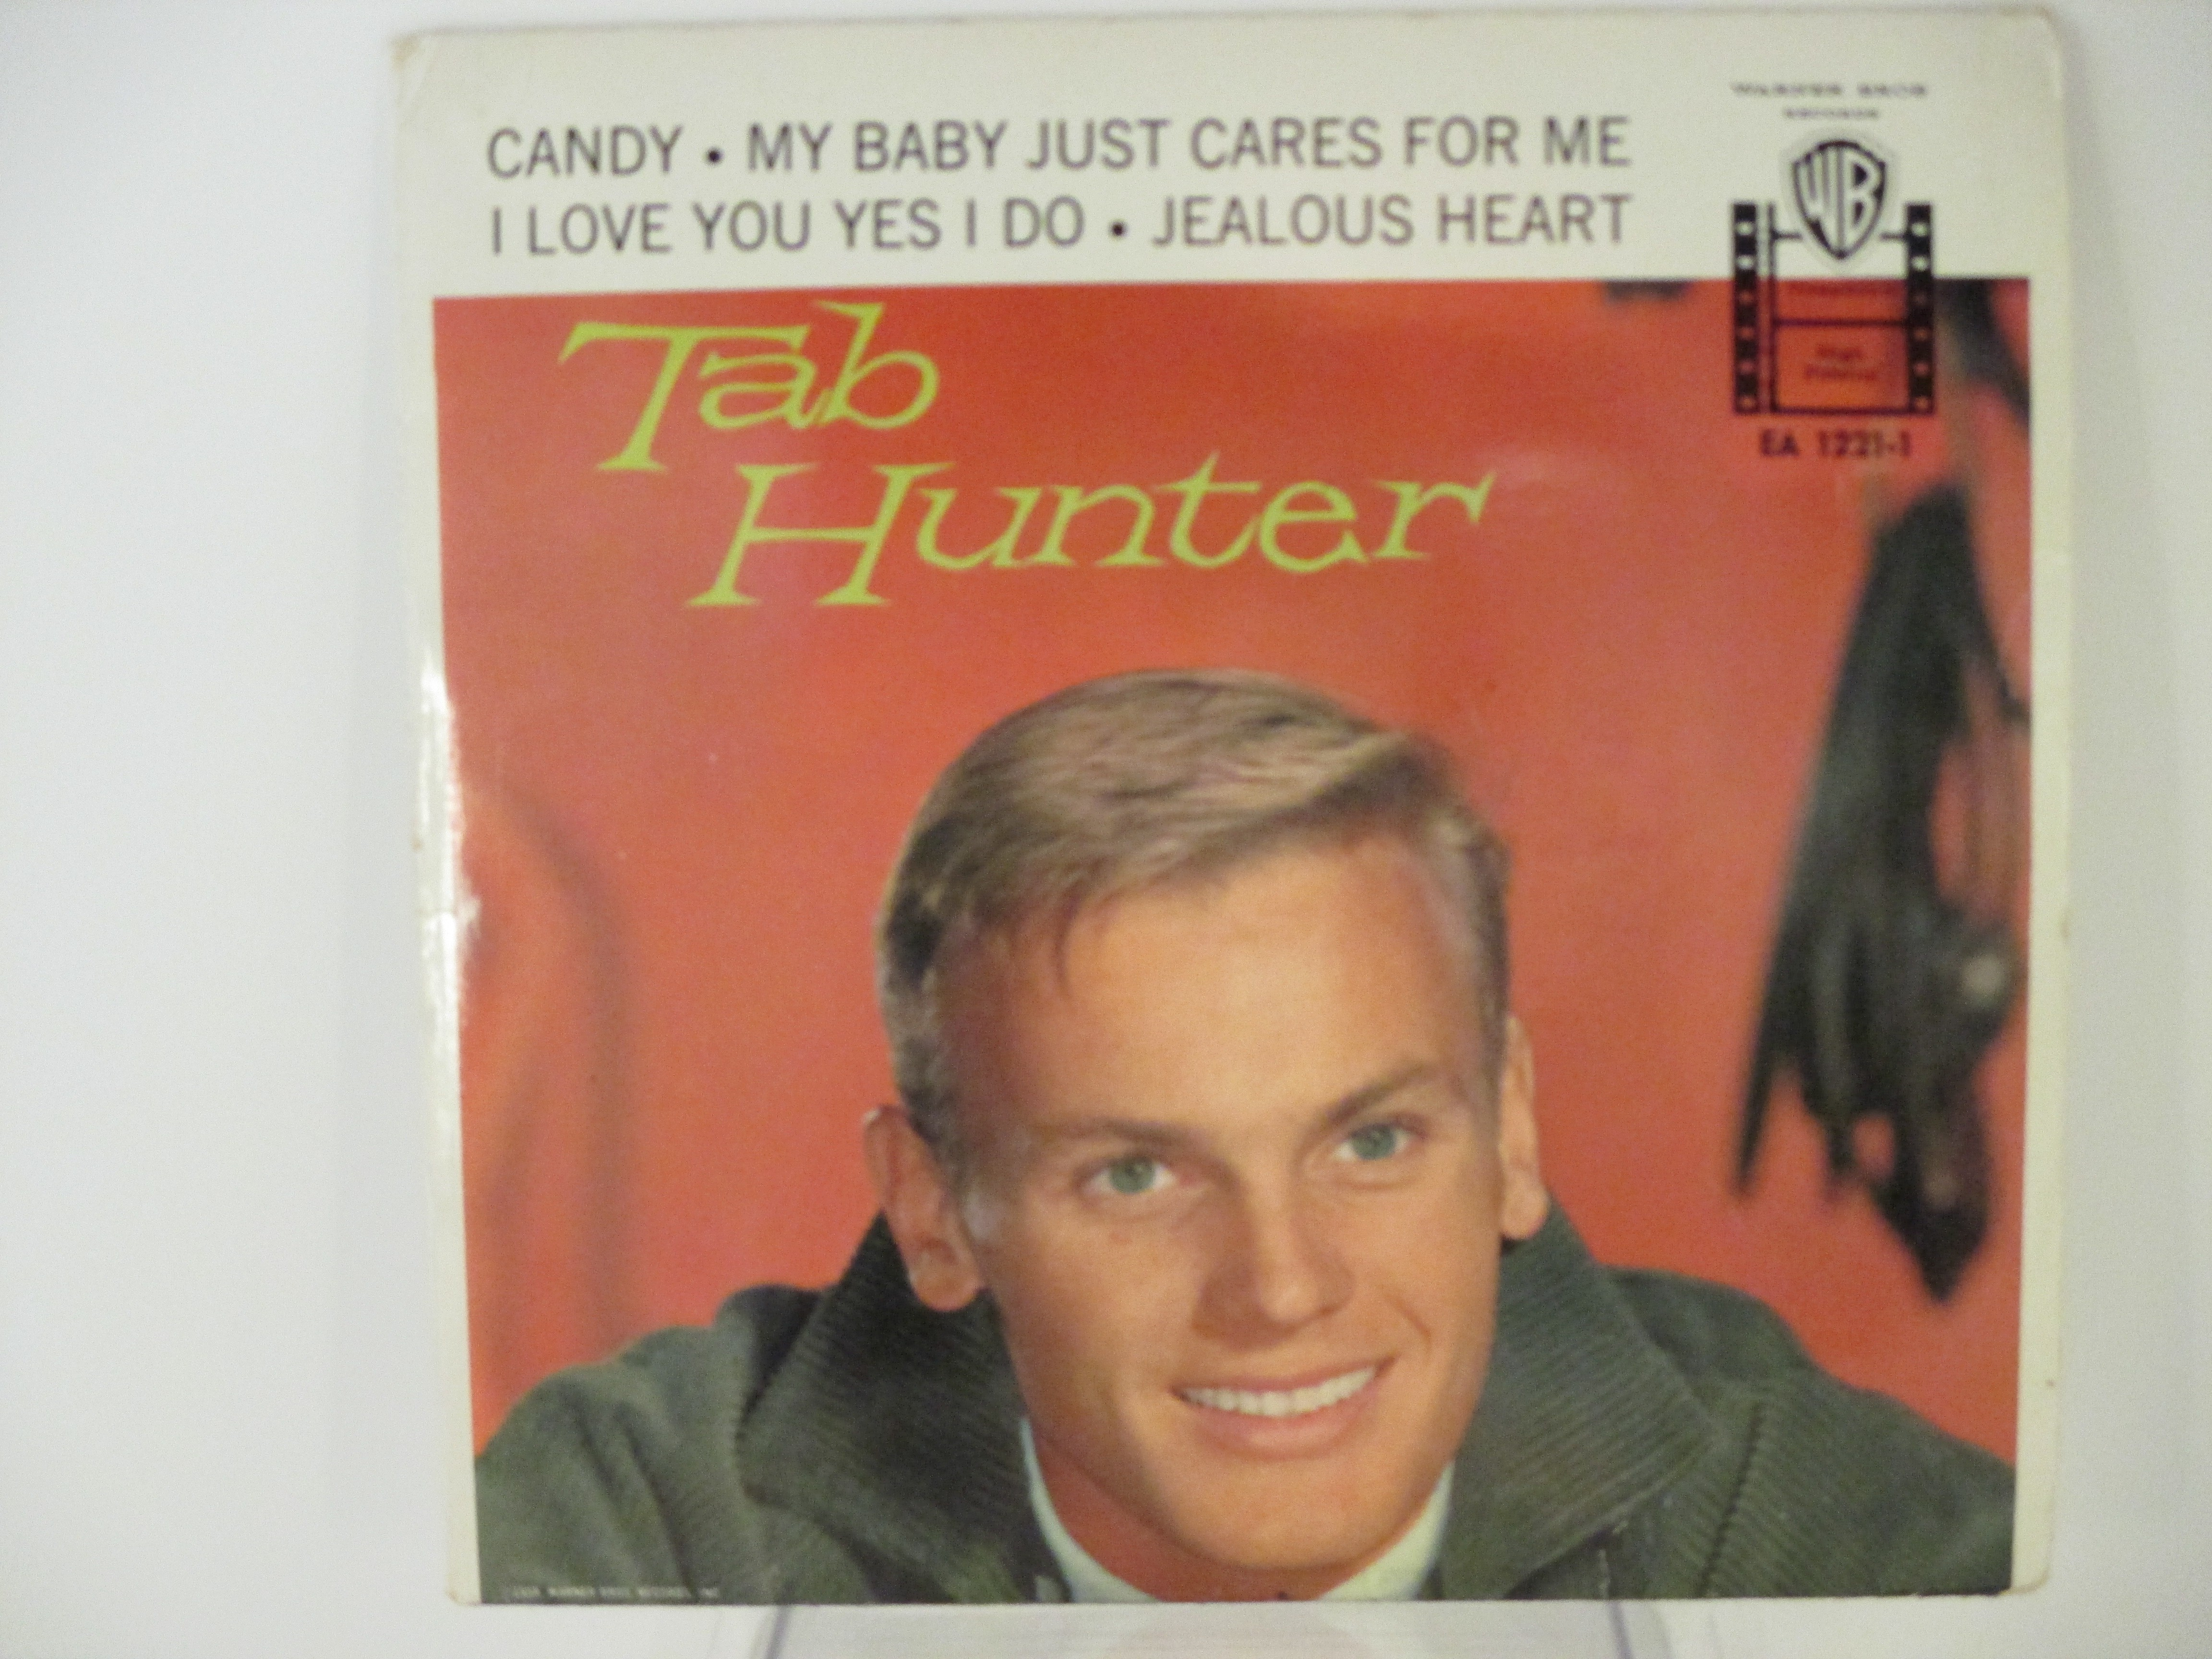 TAB HUNTER : (EP) Candy / My baby just cares for me / I love you yes I do / Jealous heart